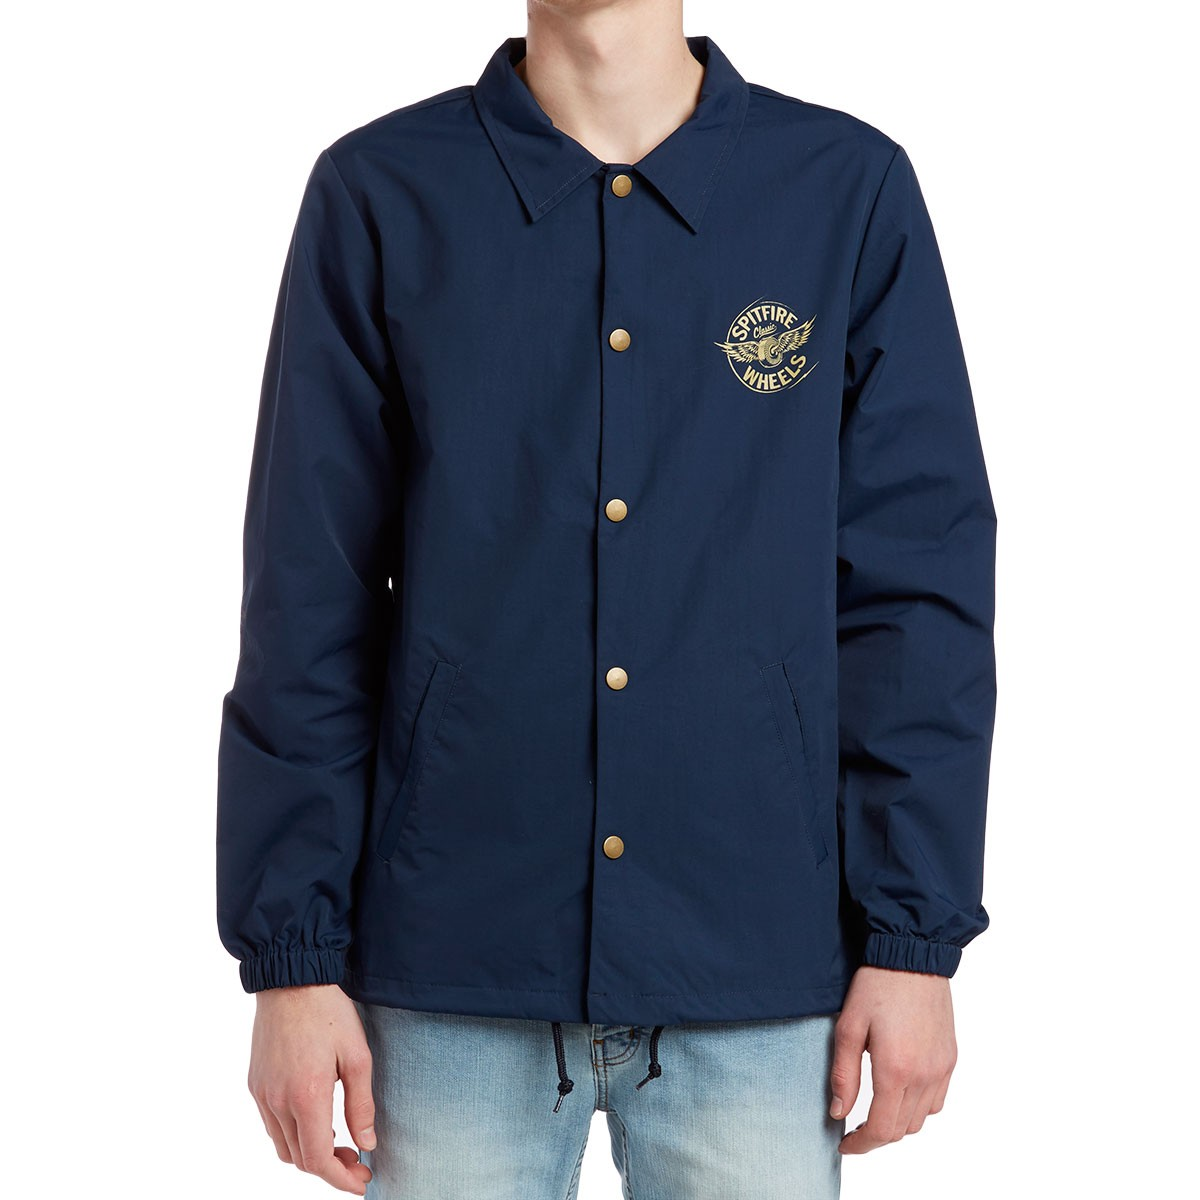 9d9037baf629 Spitfire Flying Classic Coaches Jacket - Navy